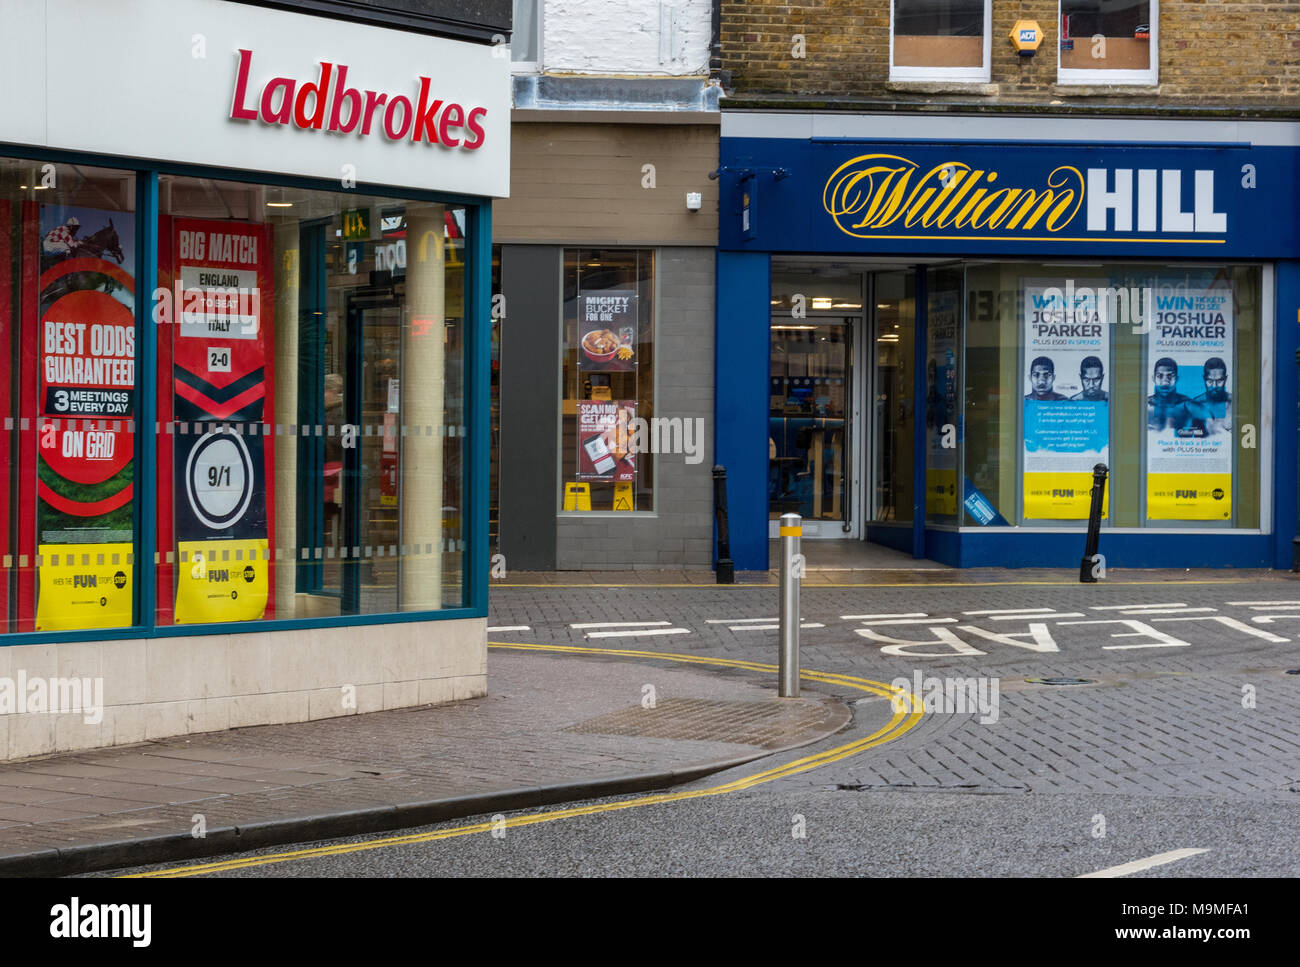 Betting shops or bookies premises in the high street for gamblers and gambling money and horse racing football odds. Addictions and bad habits money. - Stock Image